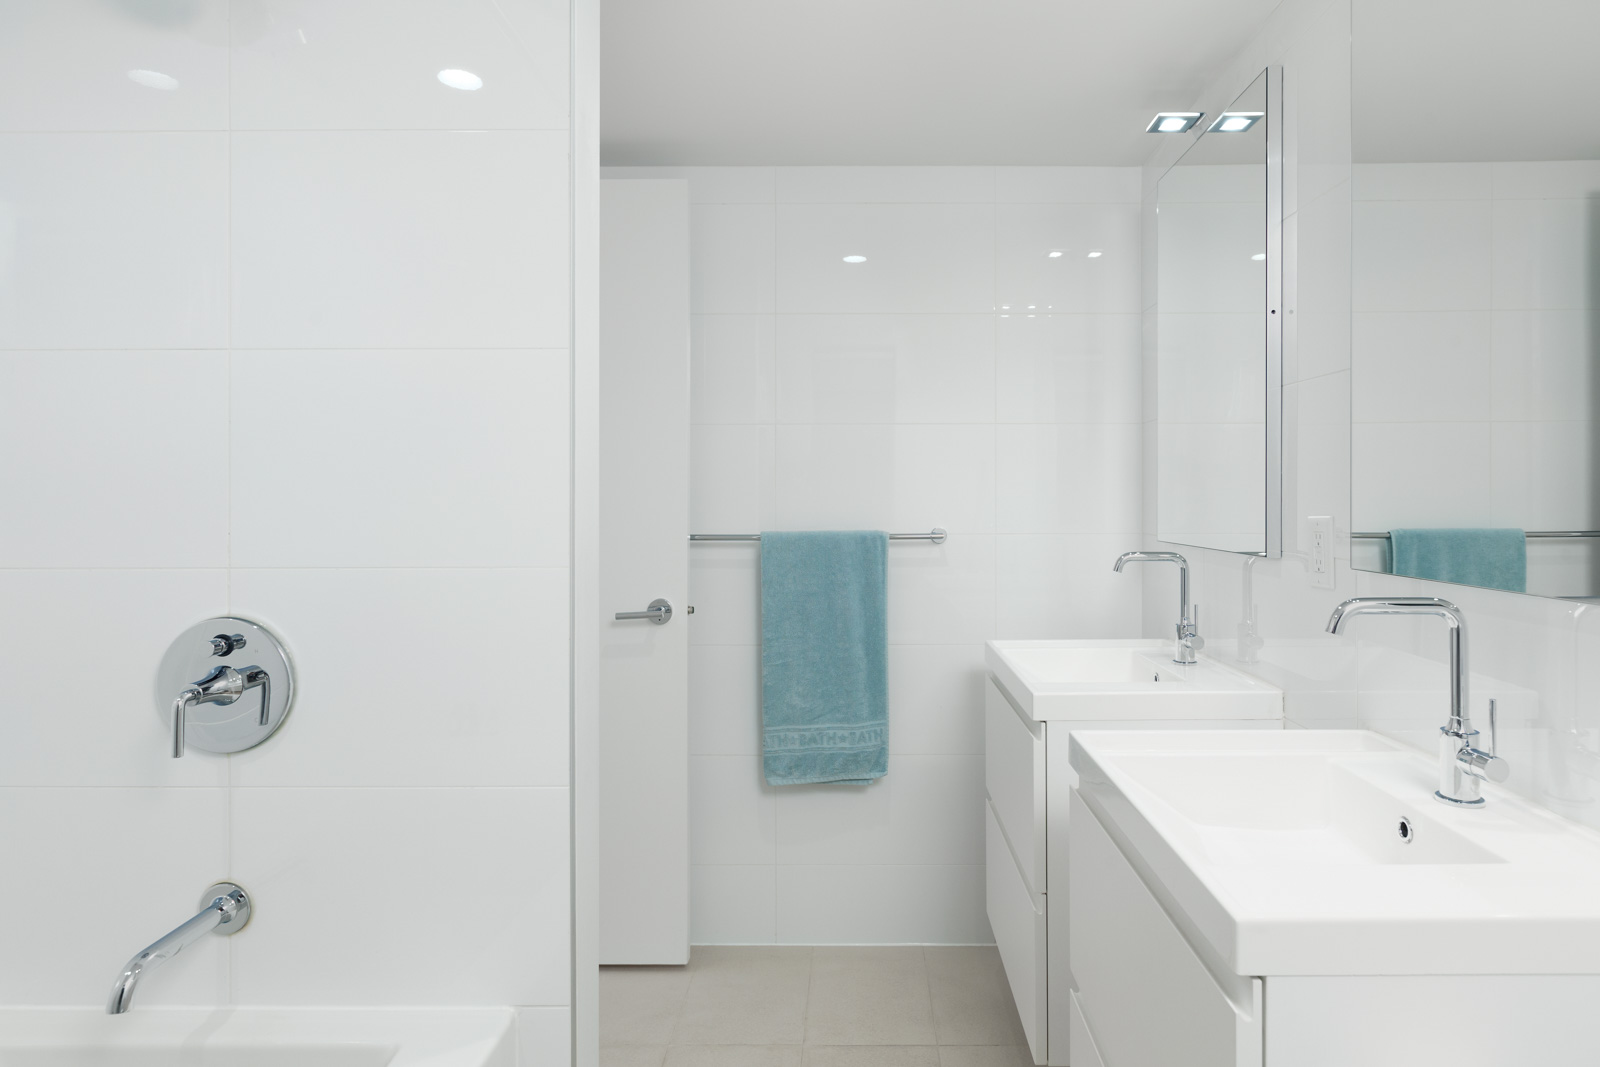 White tiled bathroom at Downtown Vancouver rental condo.